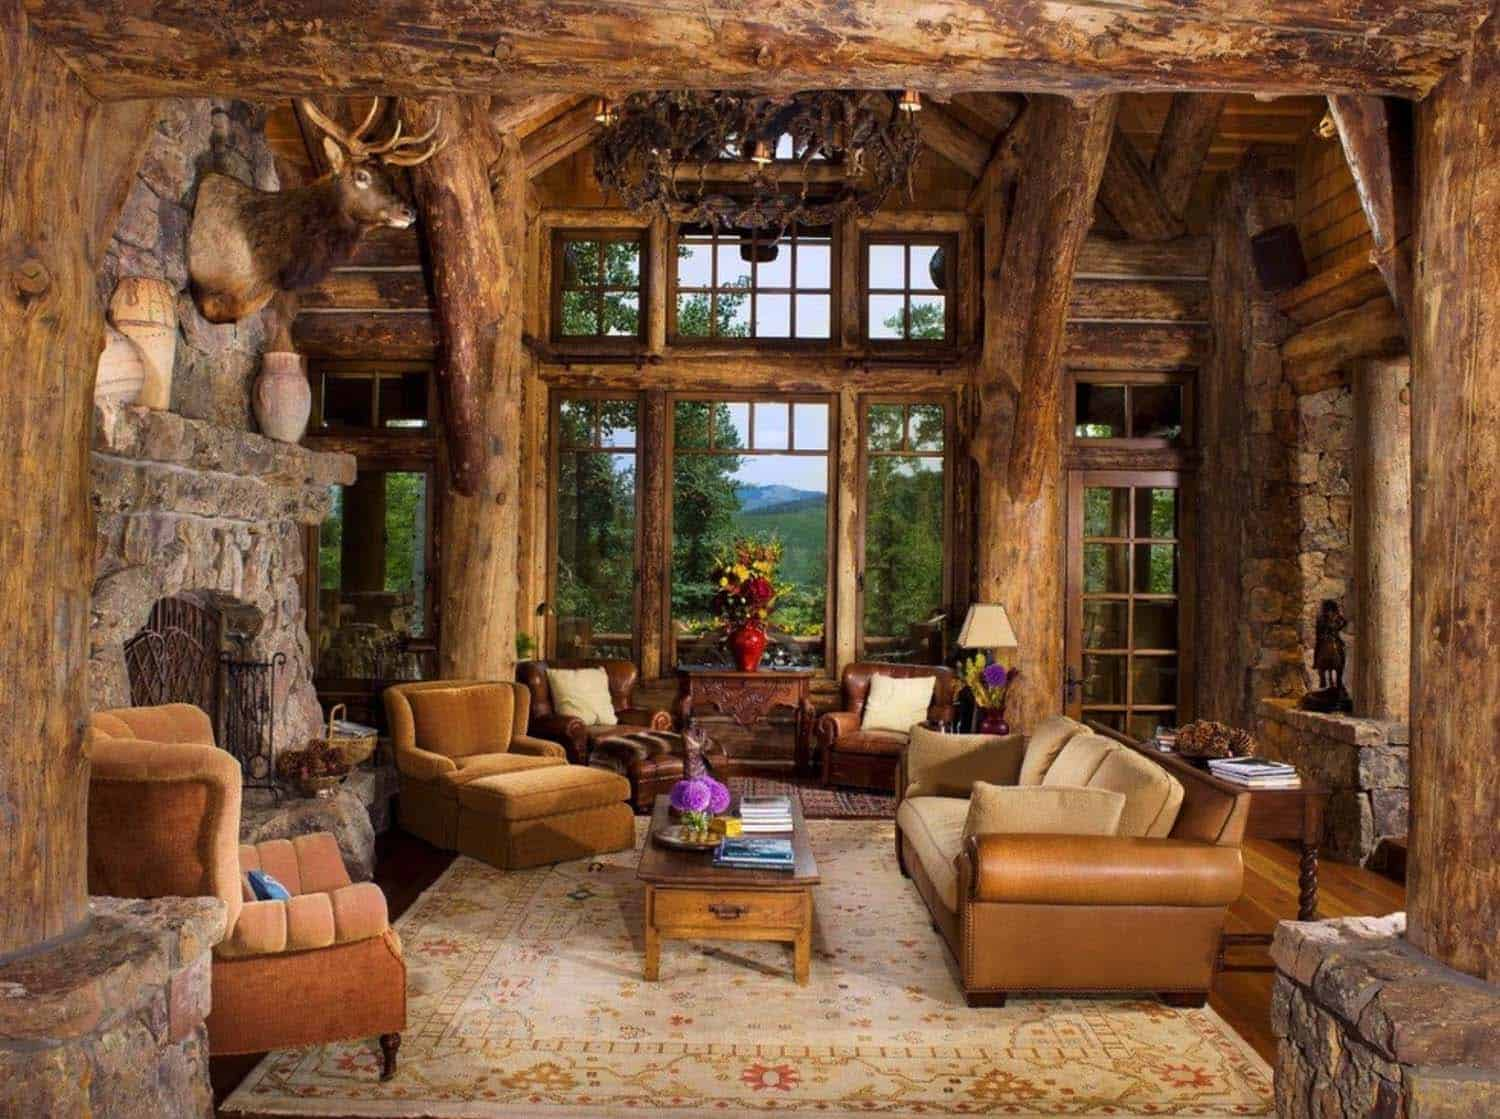 Romantic Rustic Log And Stone Home In A Colorado Mountain